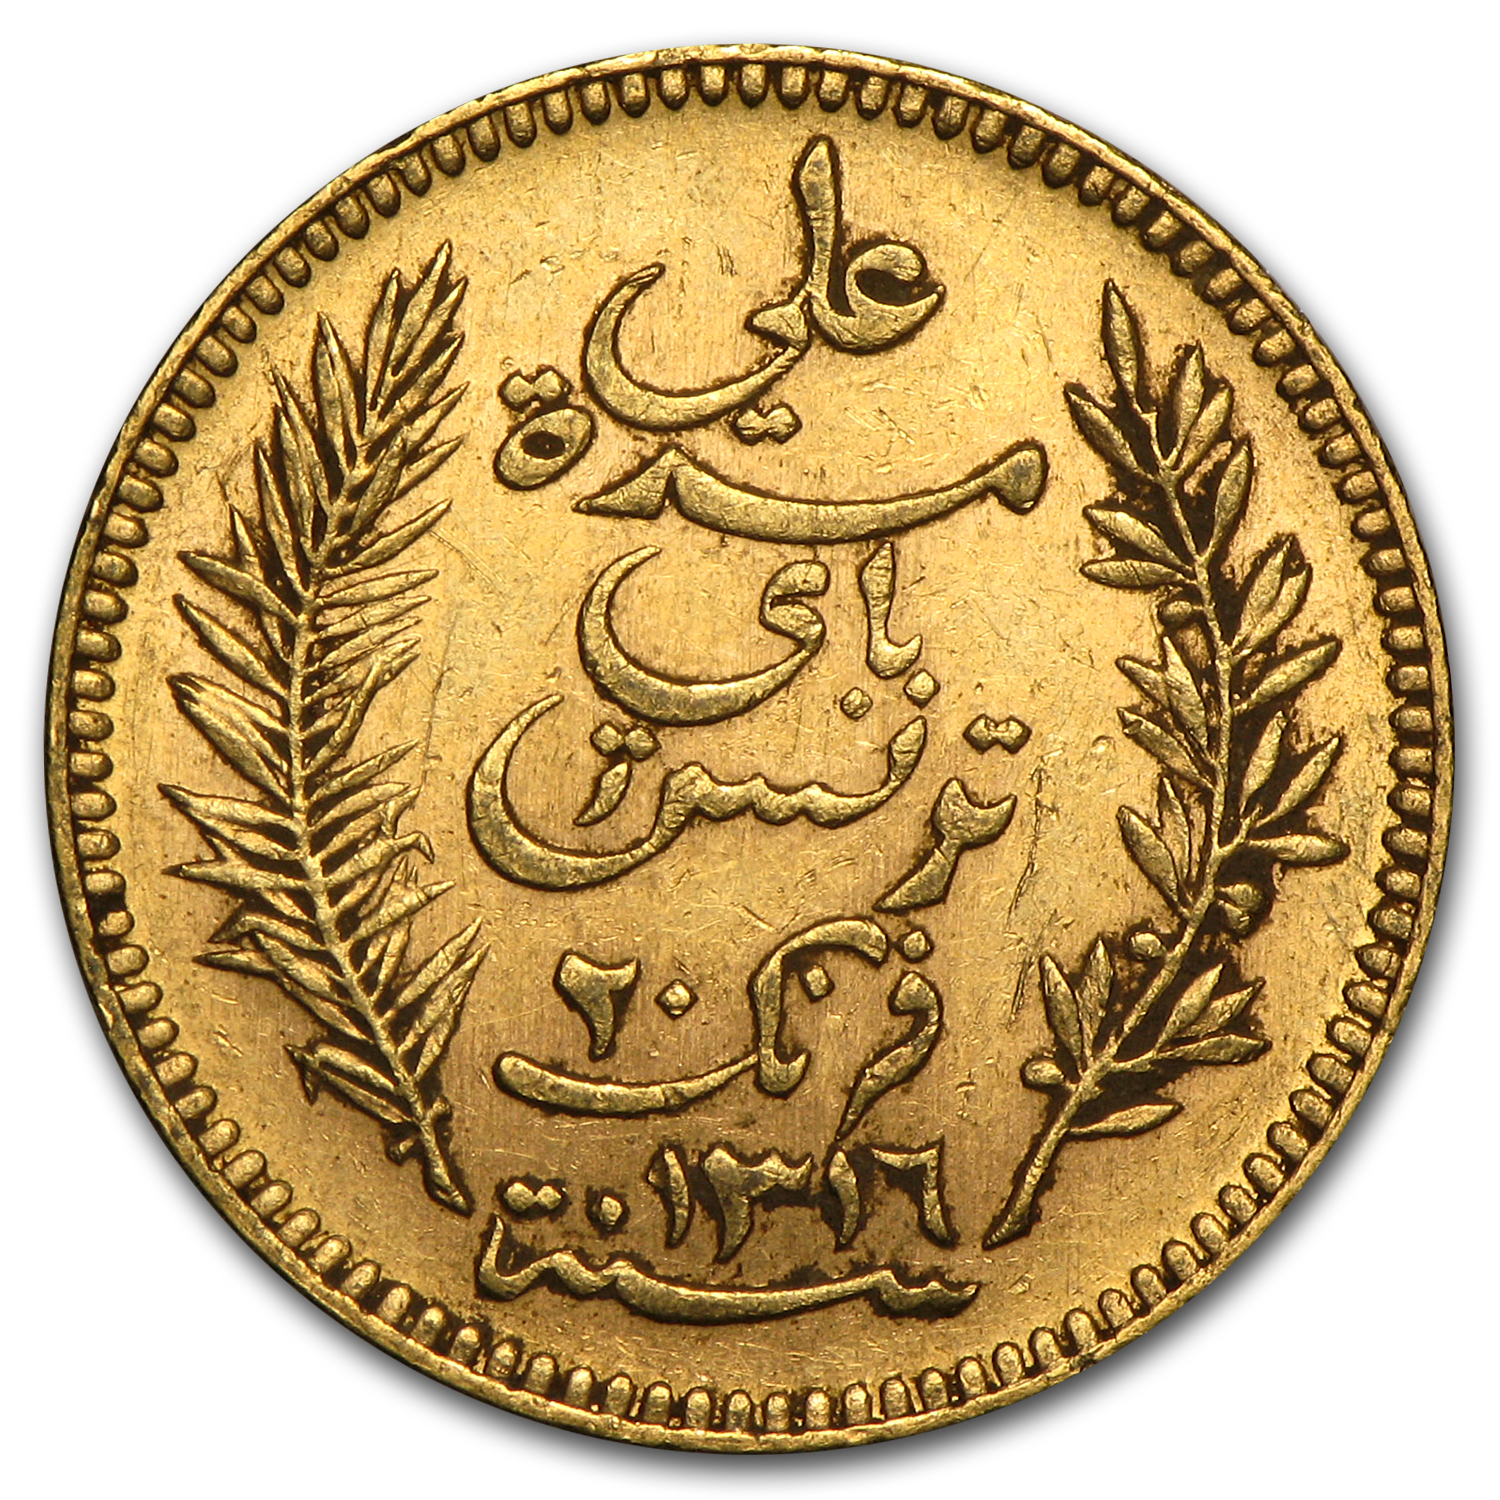 Tunisia 20 Francs Gold Coin (Avg Circ) Random Dates